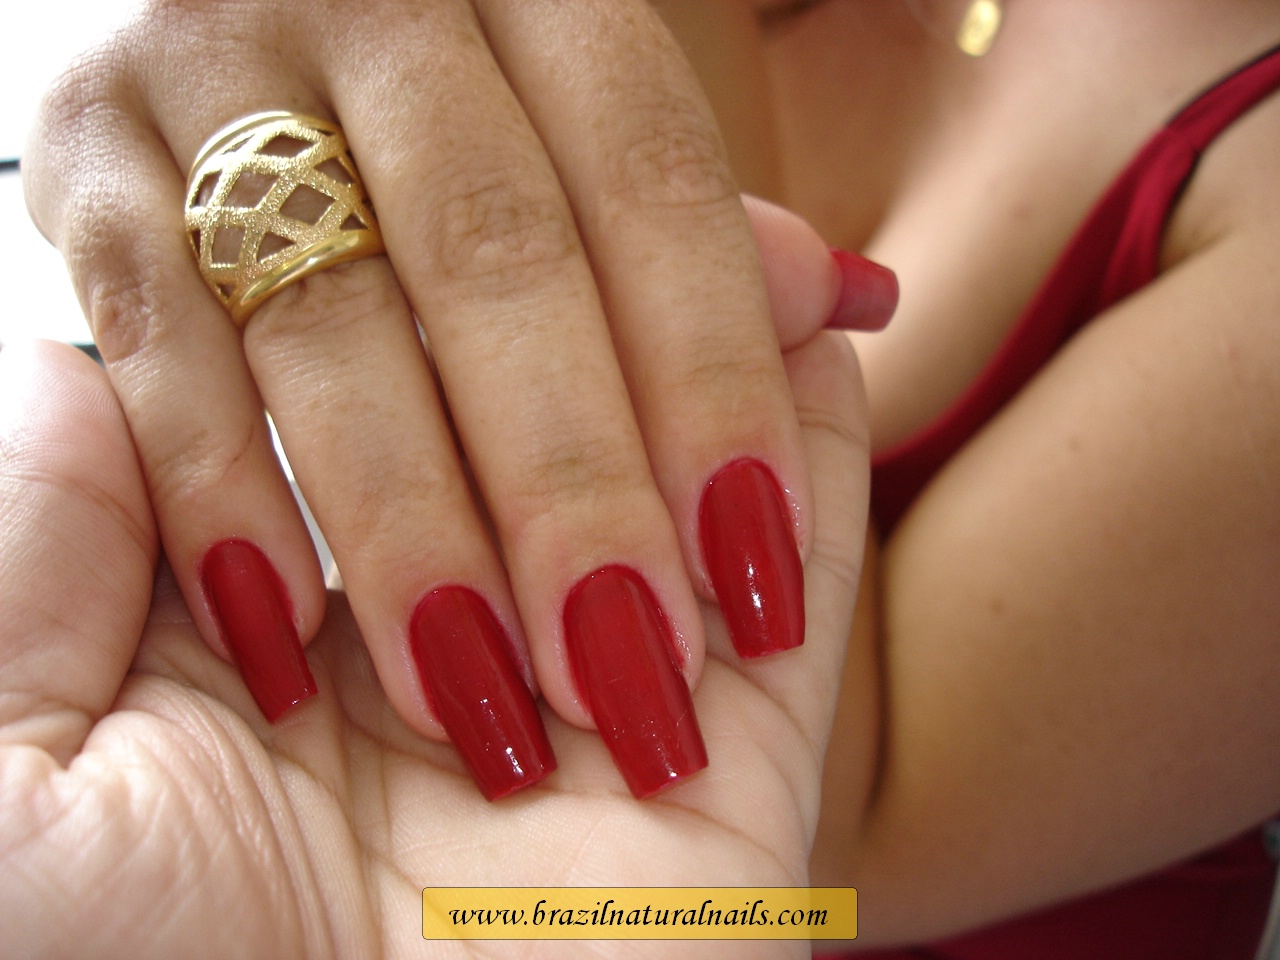 Long Nails Mature 65